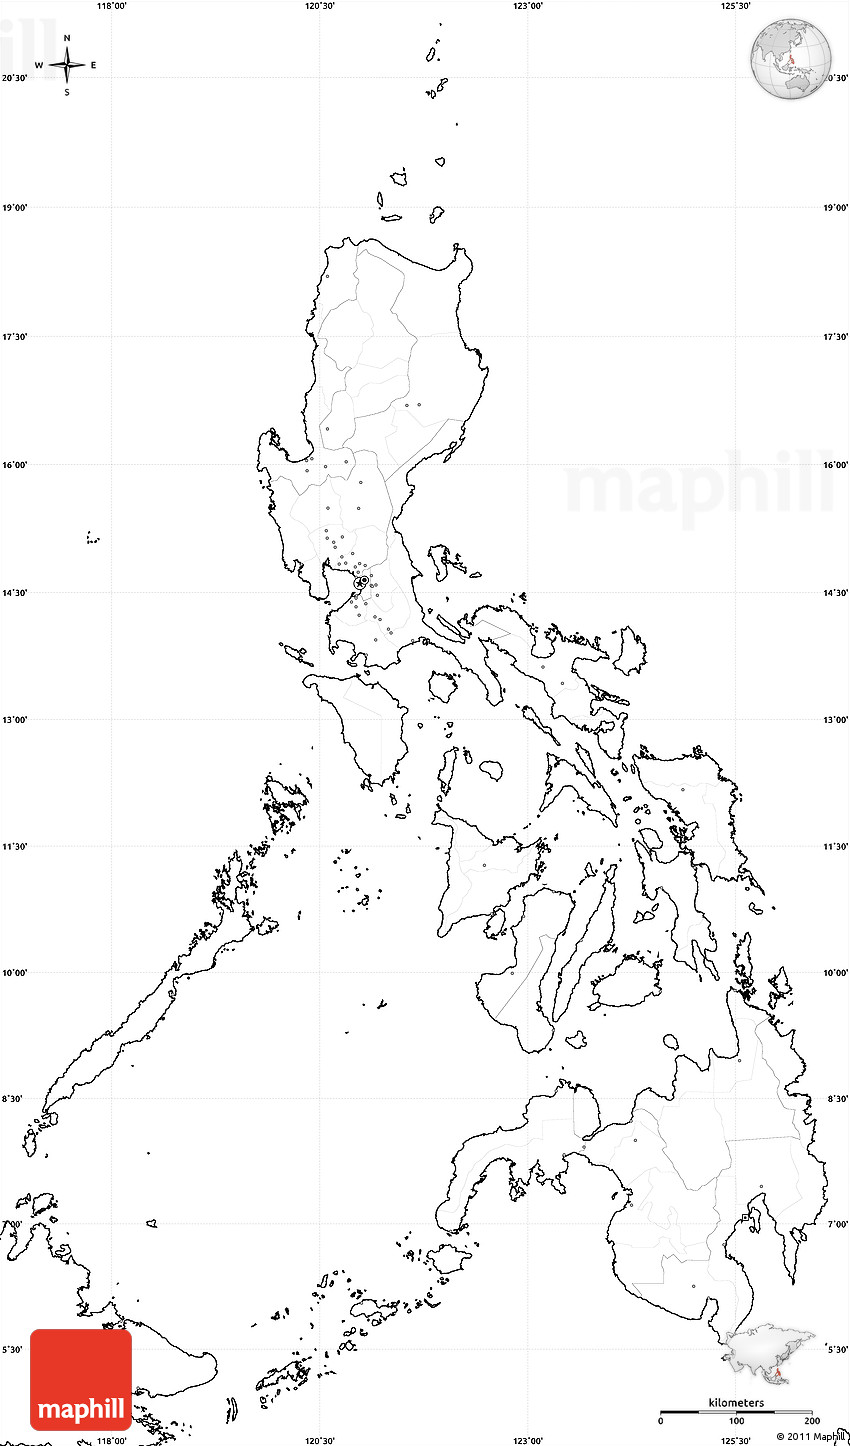 Blank Simple Map of Philippines no labels